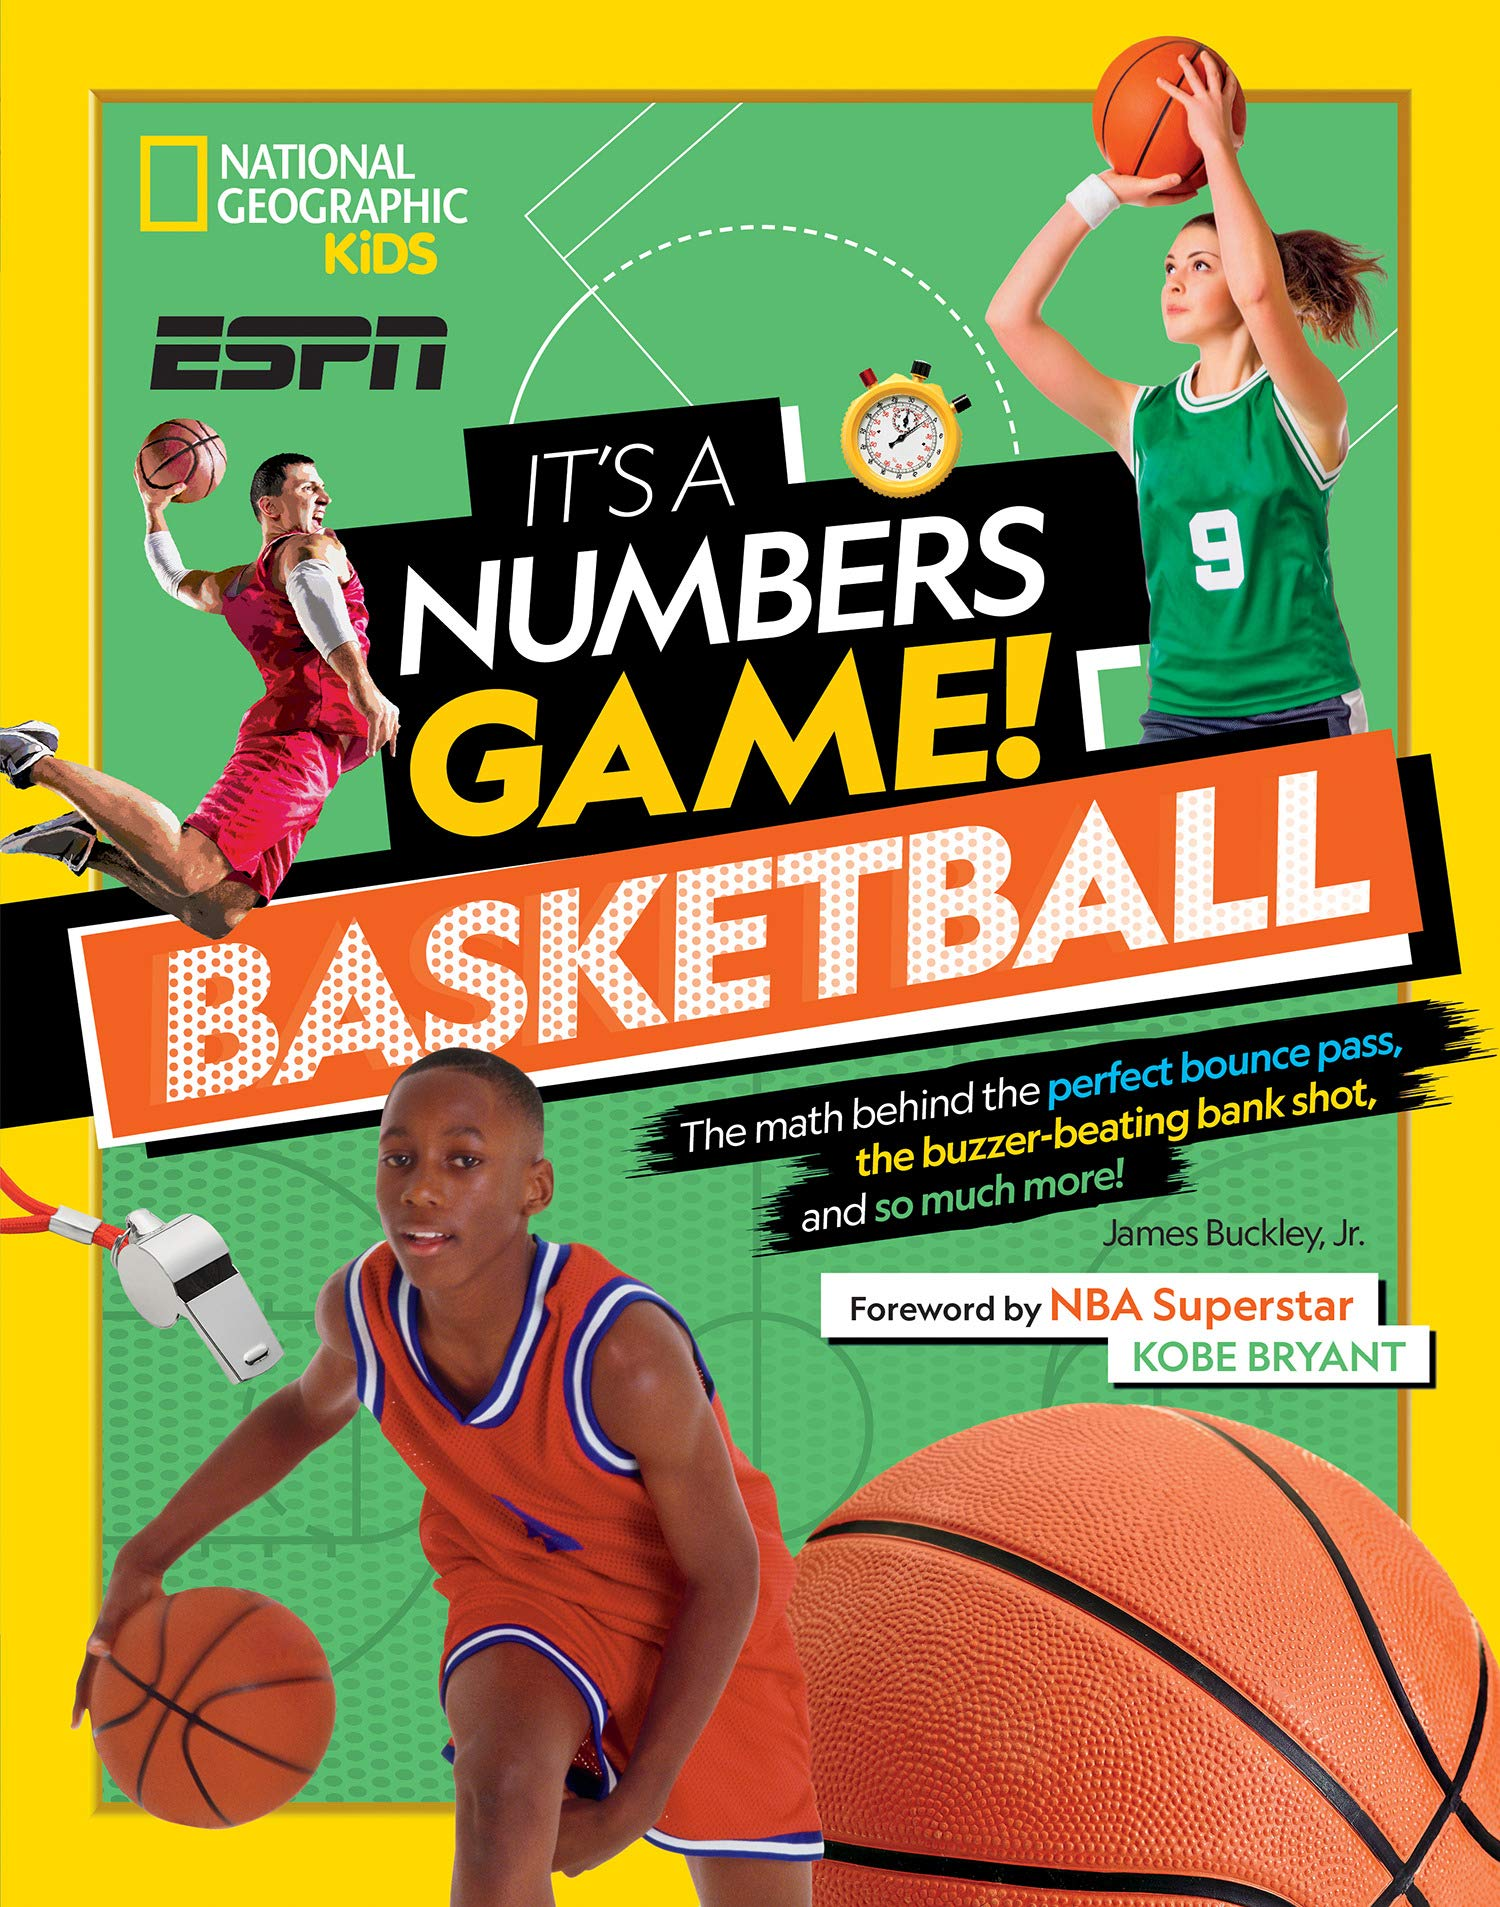 Amazon.com: Its a Numbers Game! Basketball: The math behind ...